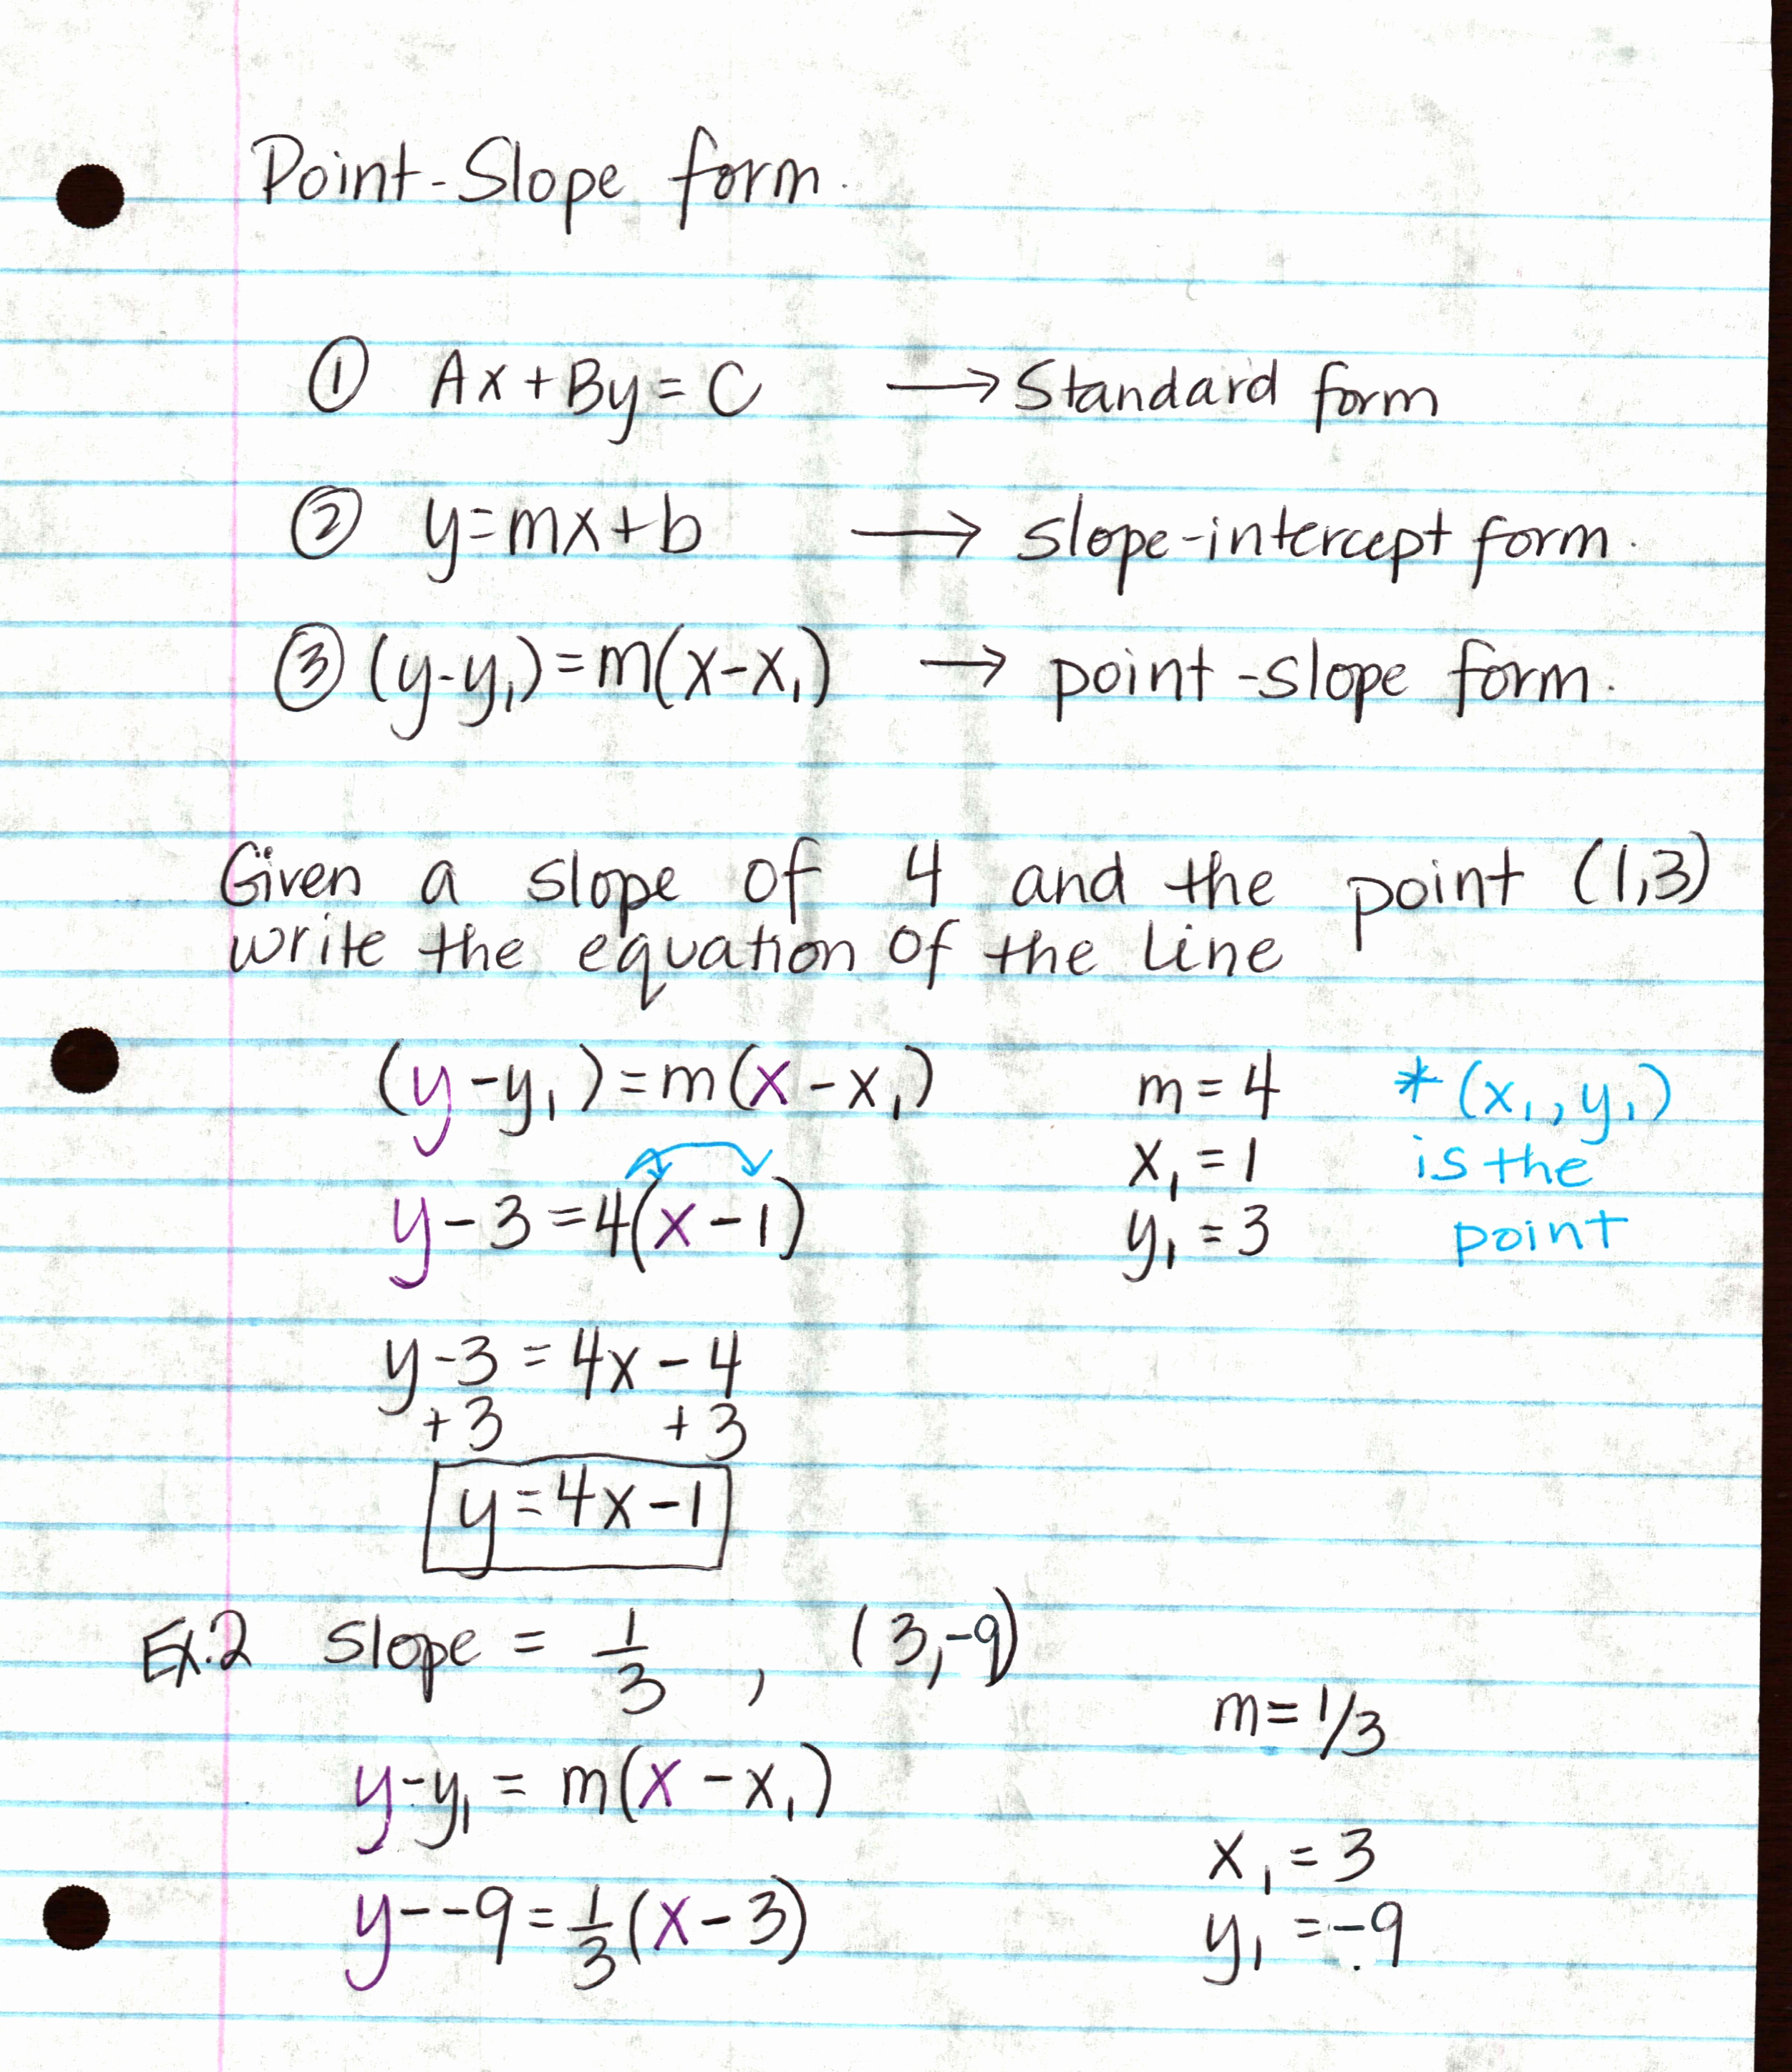 Point Slope form Worksheet Inspirational Costelloalg Algebra Homework 2012 2013